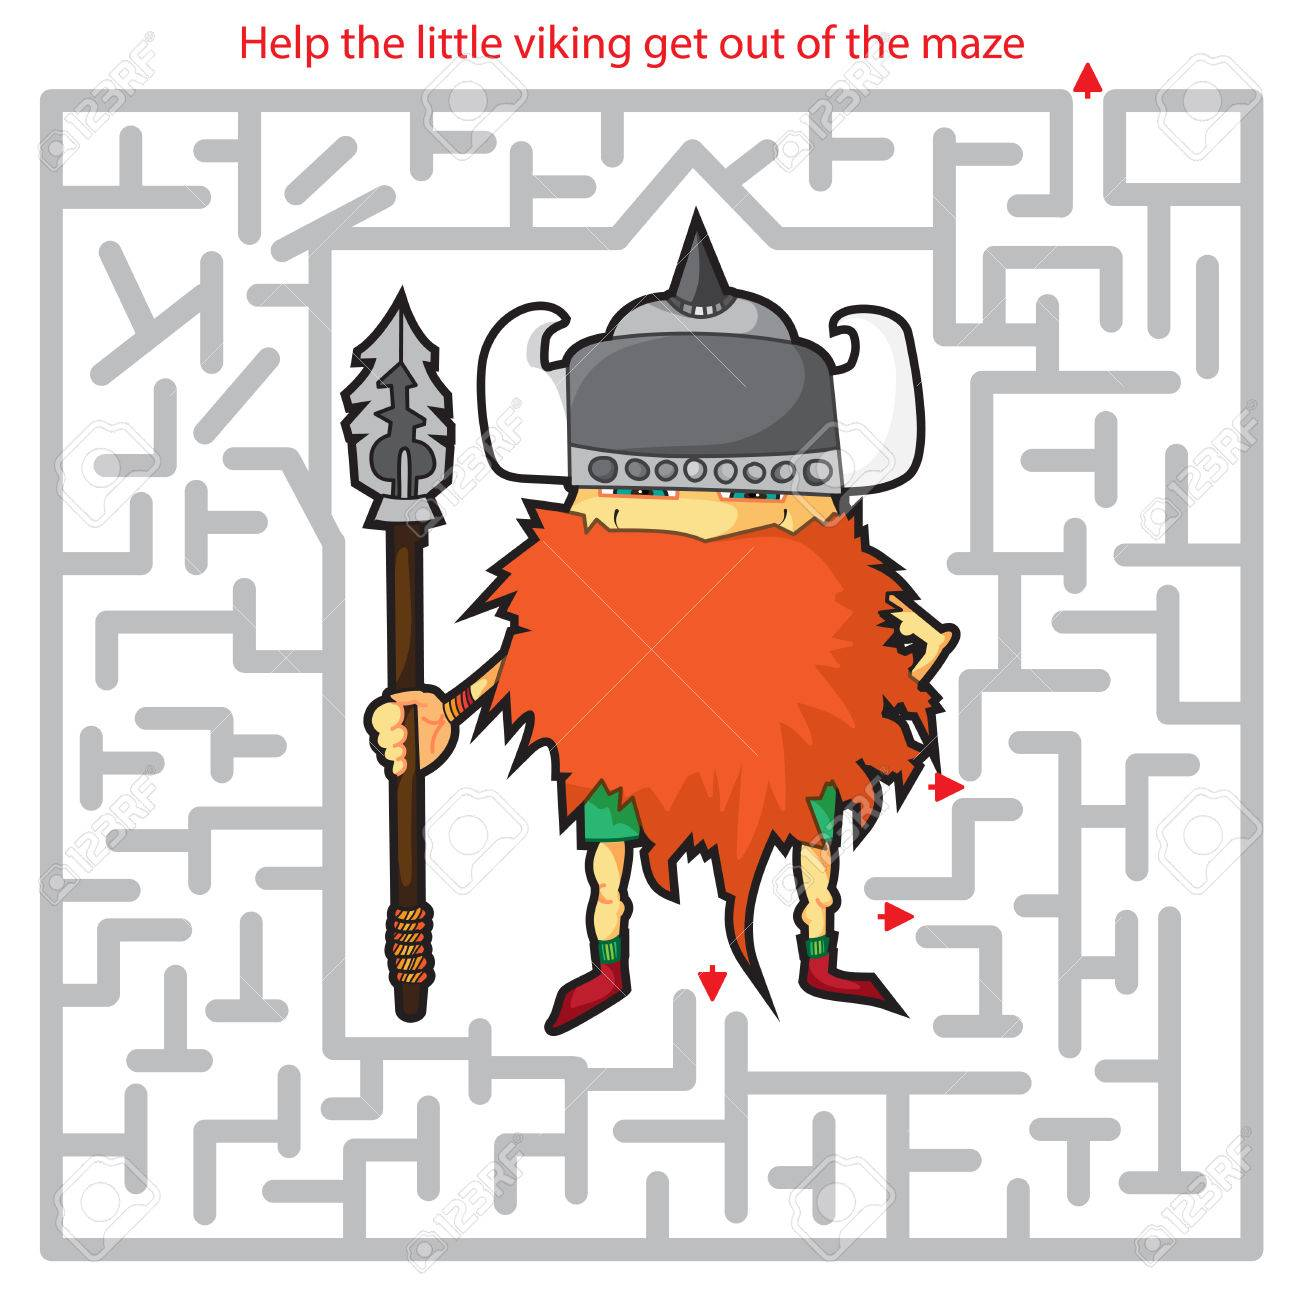 Funny Labyrinth Help The Viking Get Out Of The Maze Illustration